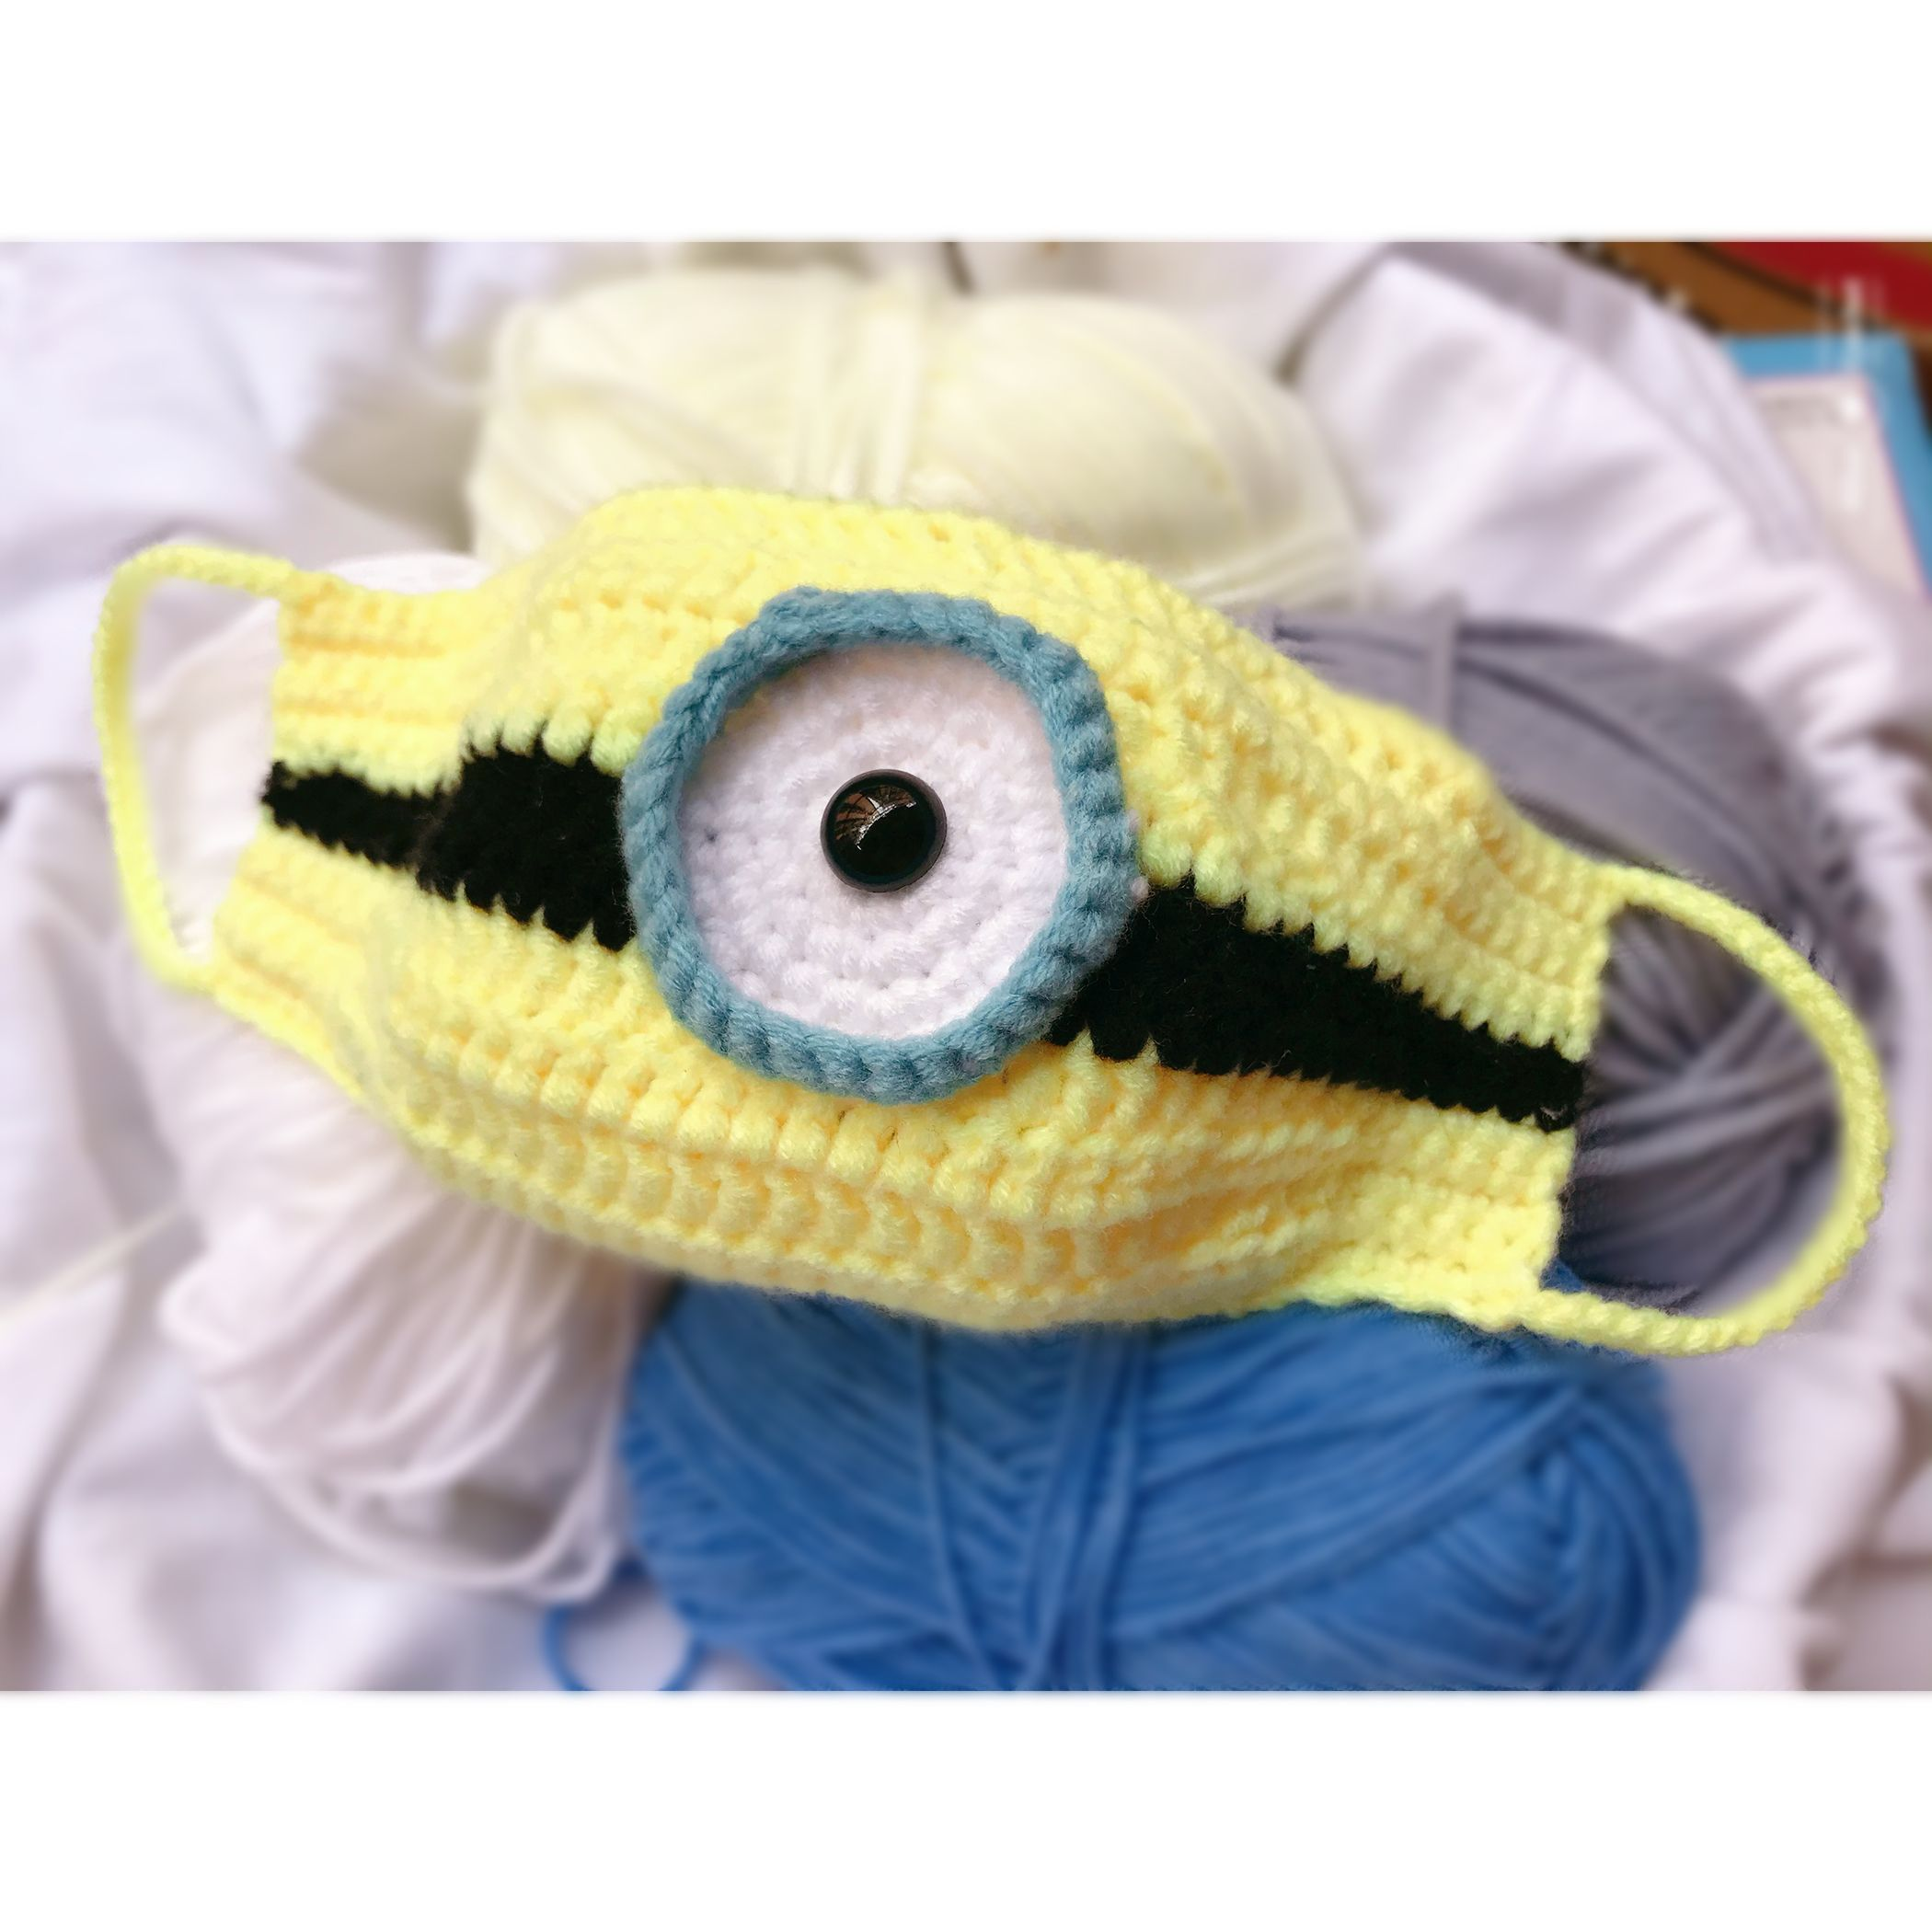 CROCHET PATTERN Face Mask PDF Tutorial -Minions and Frog Cute Mask Pattern for Child